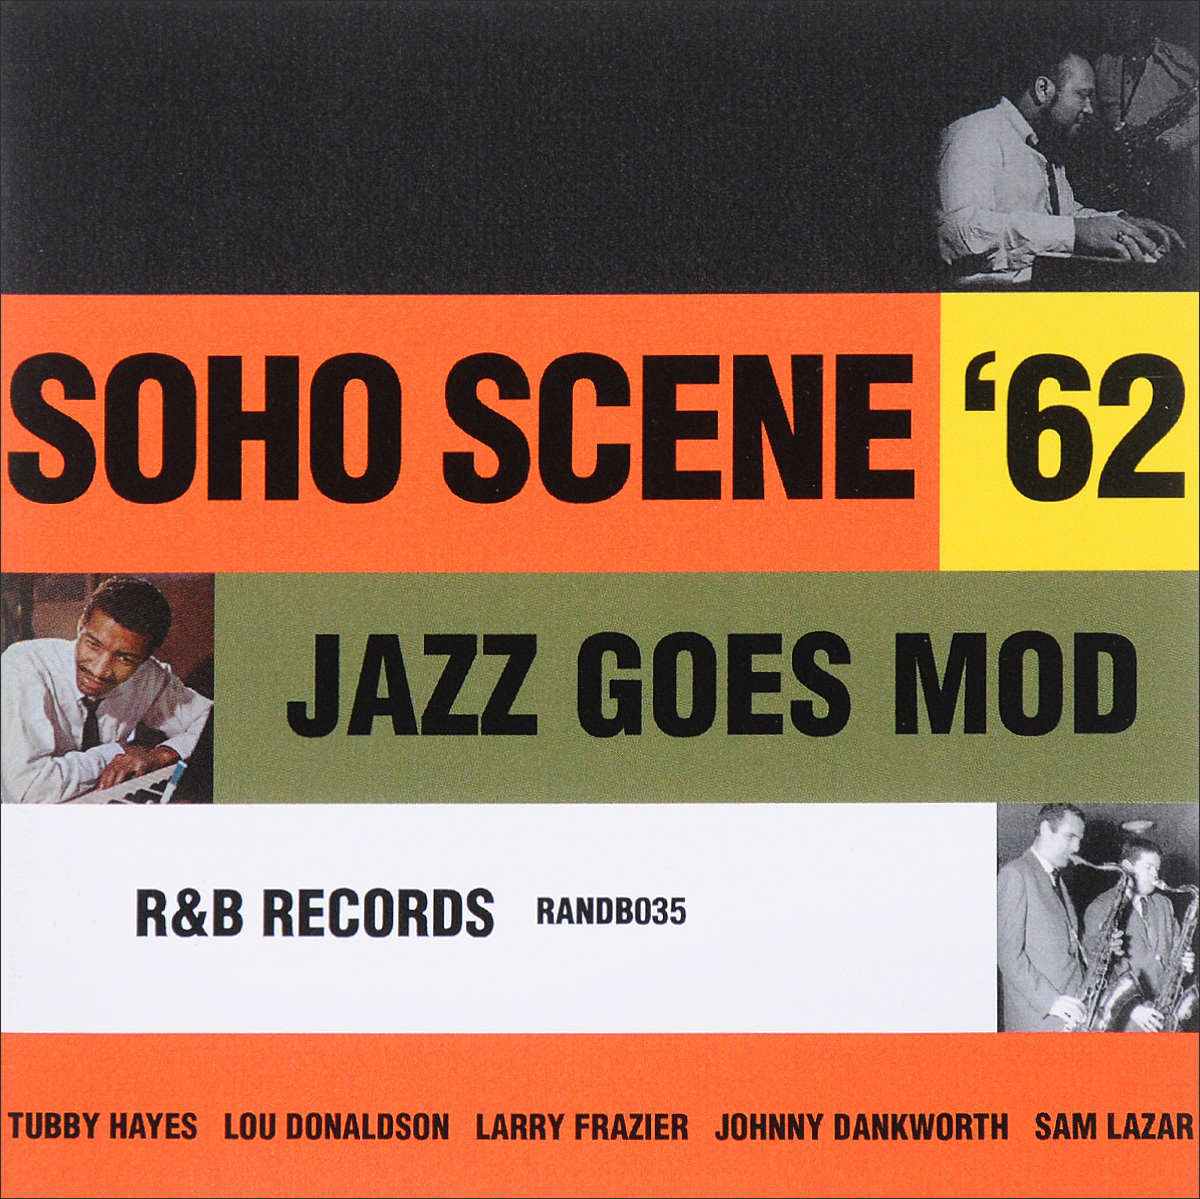 Don Rendell Quintet,Tony Coe Quintet,Табби Хауес,The All Stars,The British Jazz Trio,Larry Frazier,Tres Bien,Sam Lazar Trio,Phil Guilbeau,Тэд Курсон Soho Scene '62. Jazz Goes Mod (2 CD) phil collins the singles 2 cd